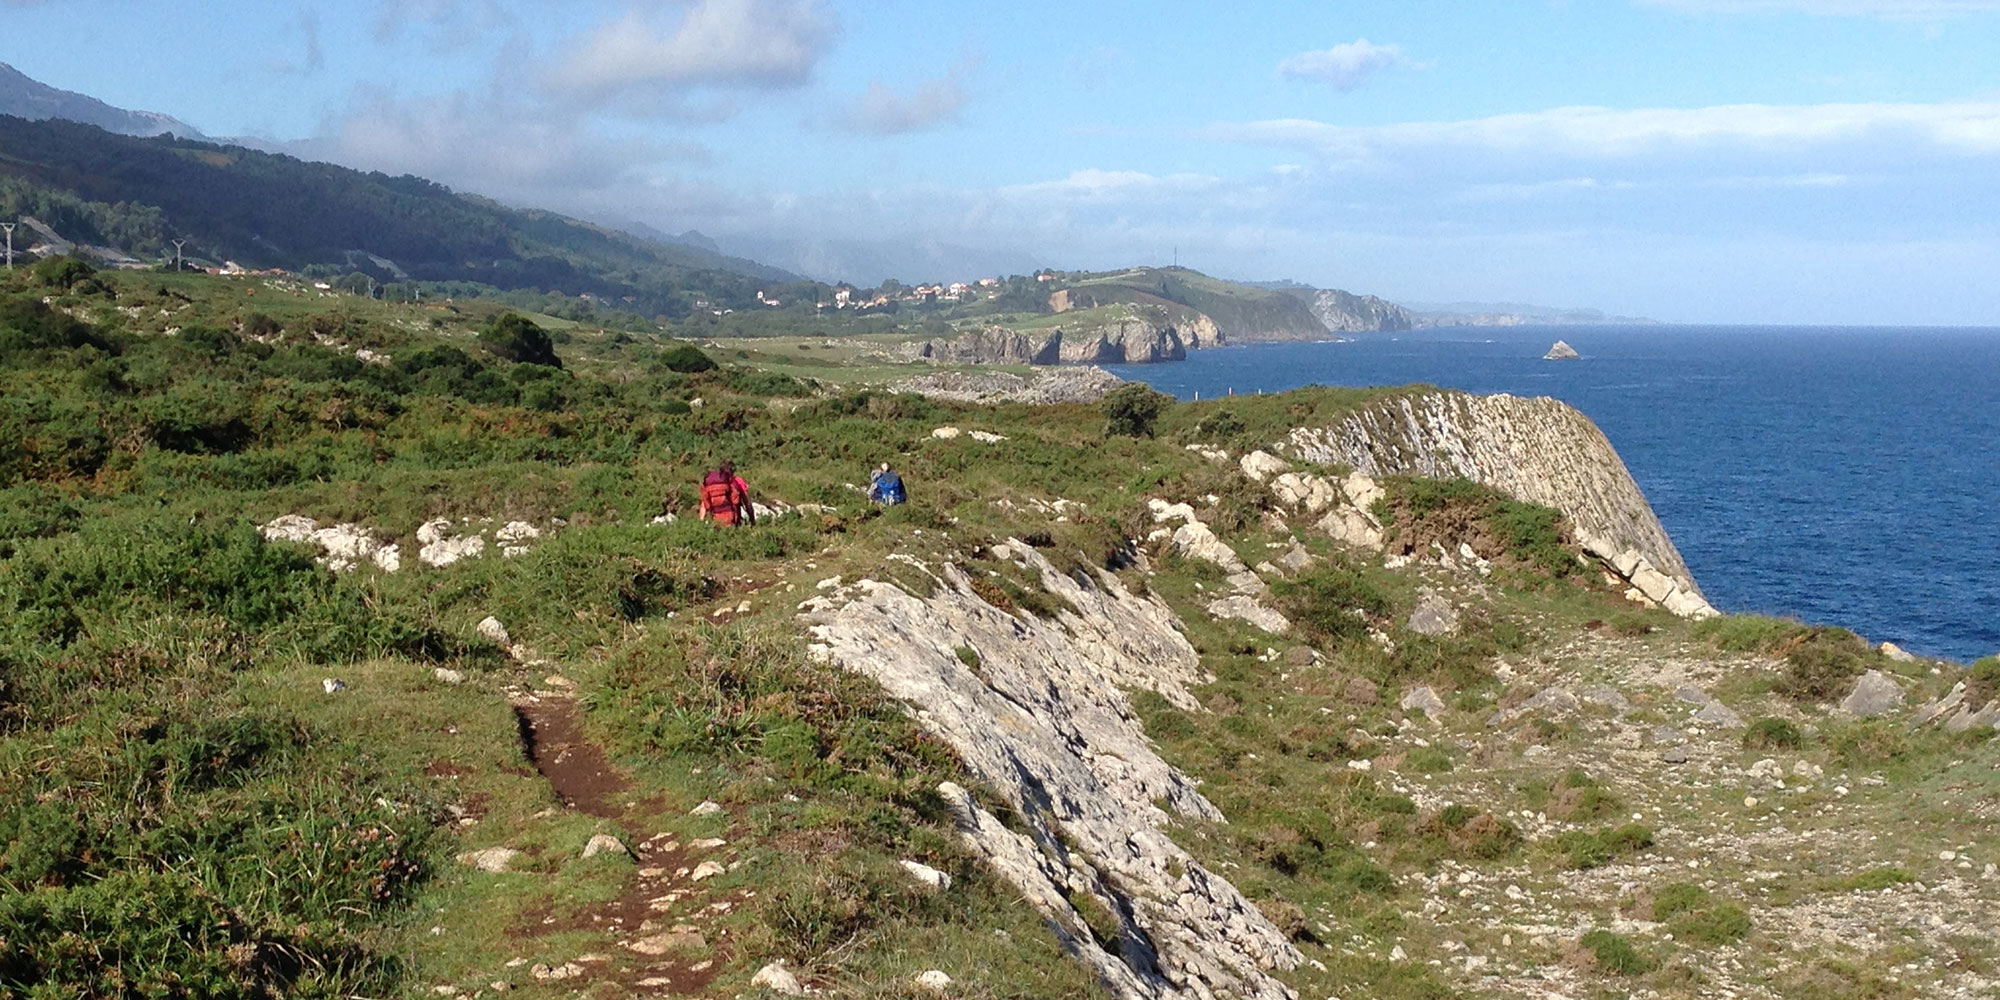 Walking the Camino del Norte on the Cantabrian Sea near Castro Urdiales, Spain, September 2015.